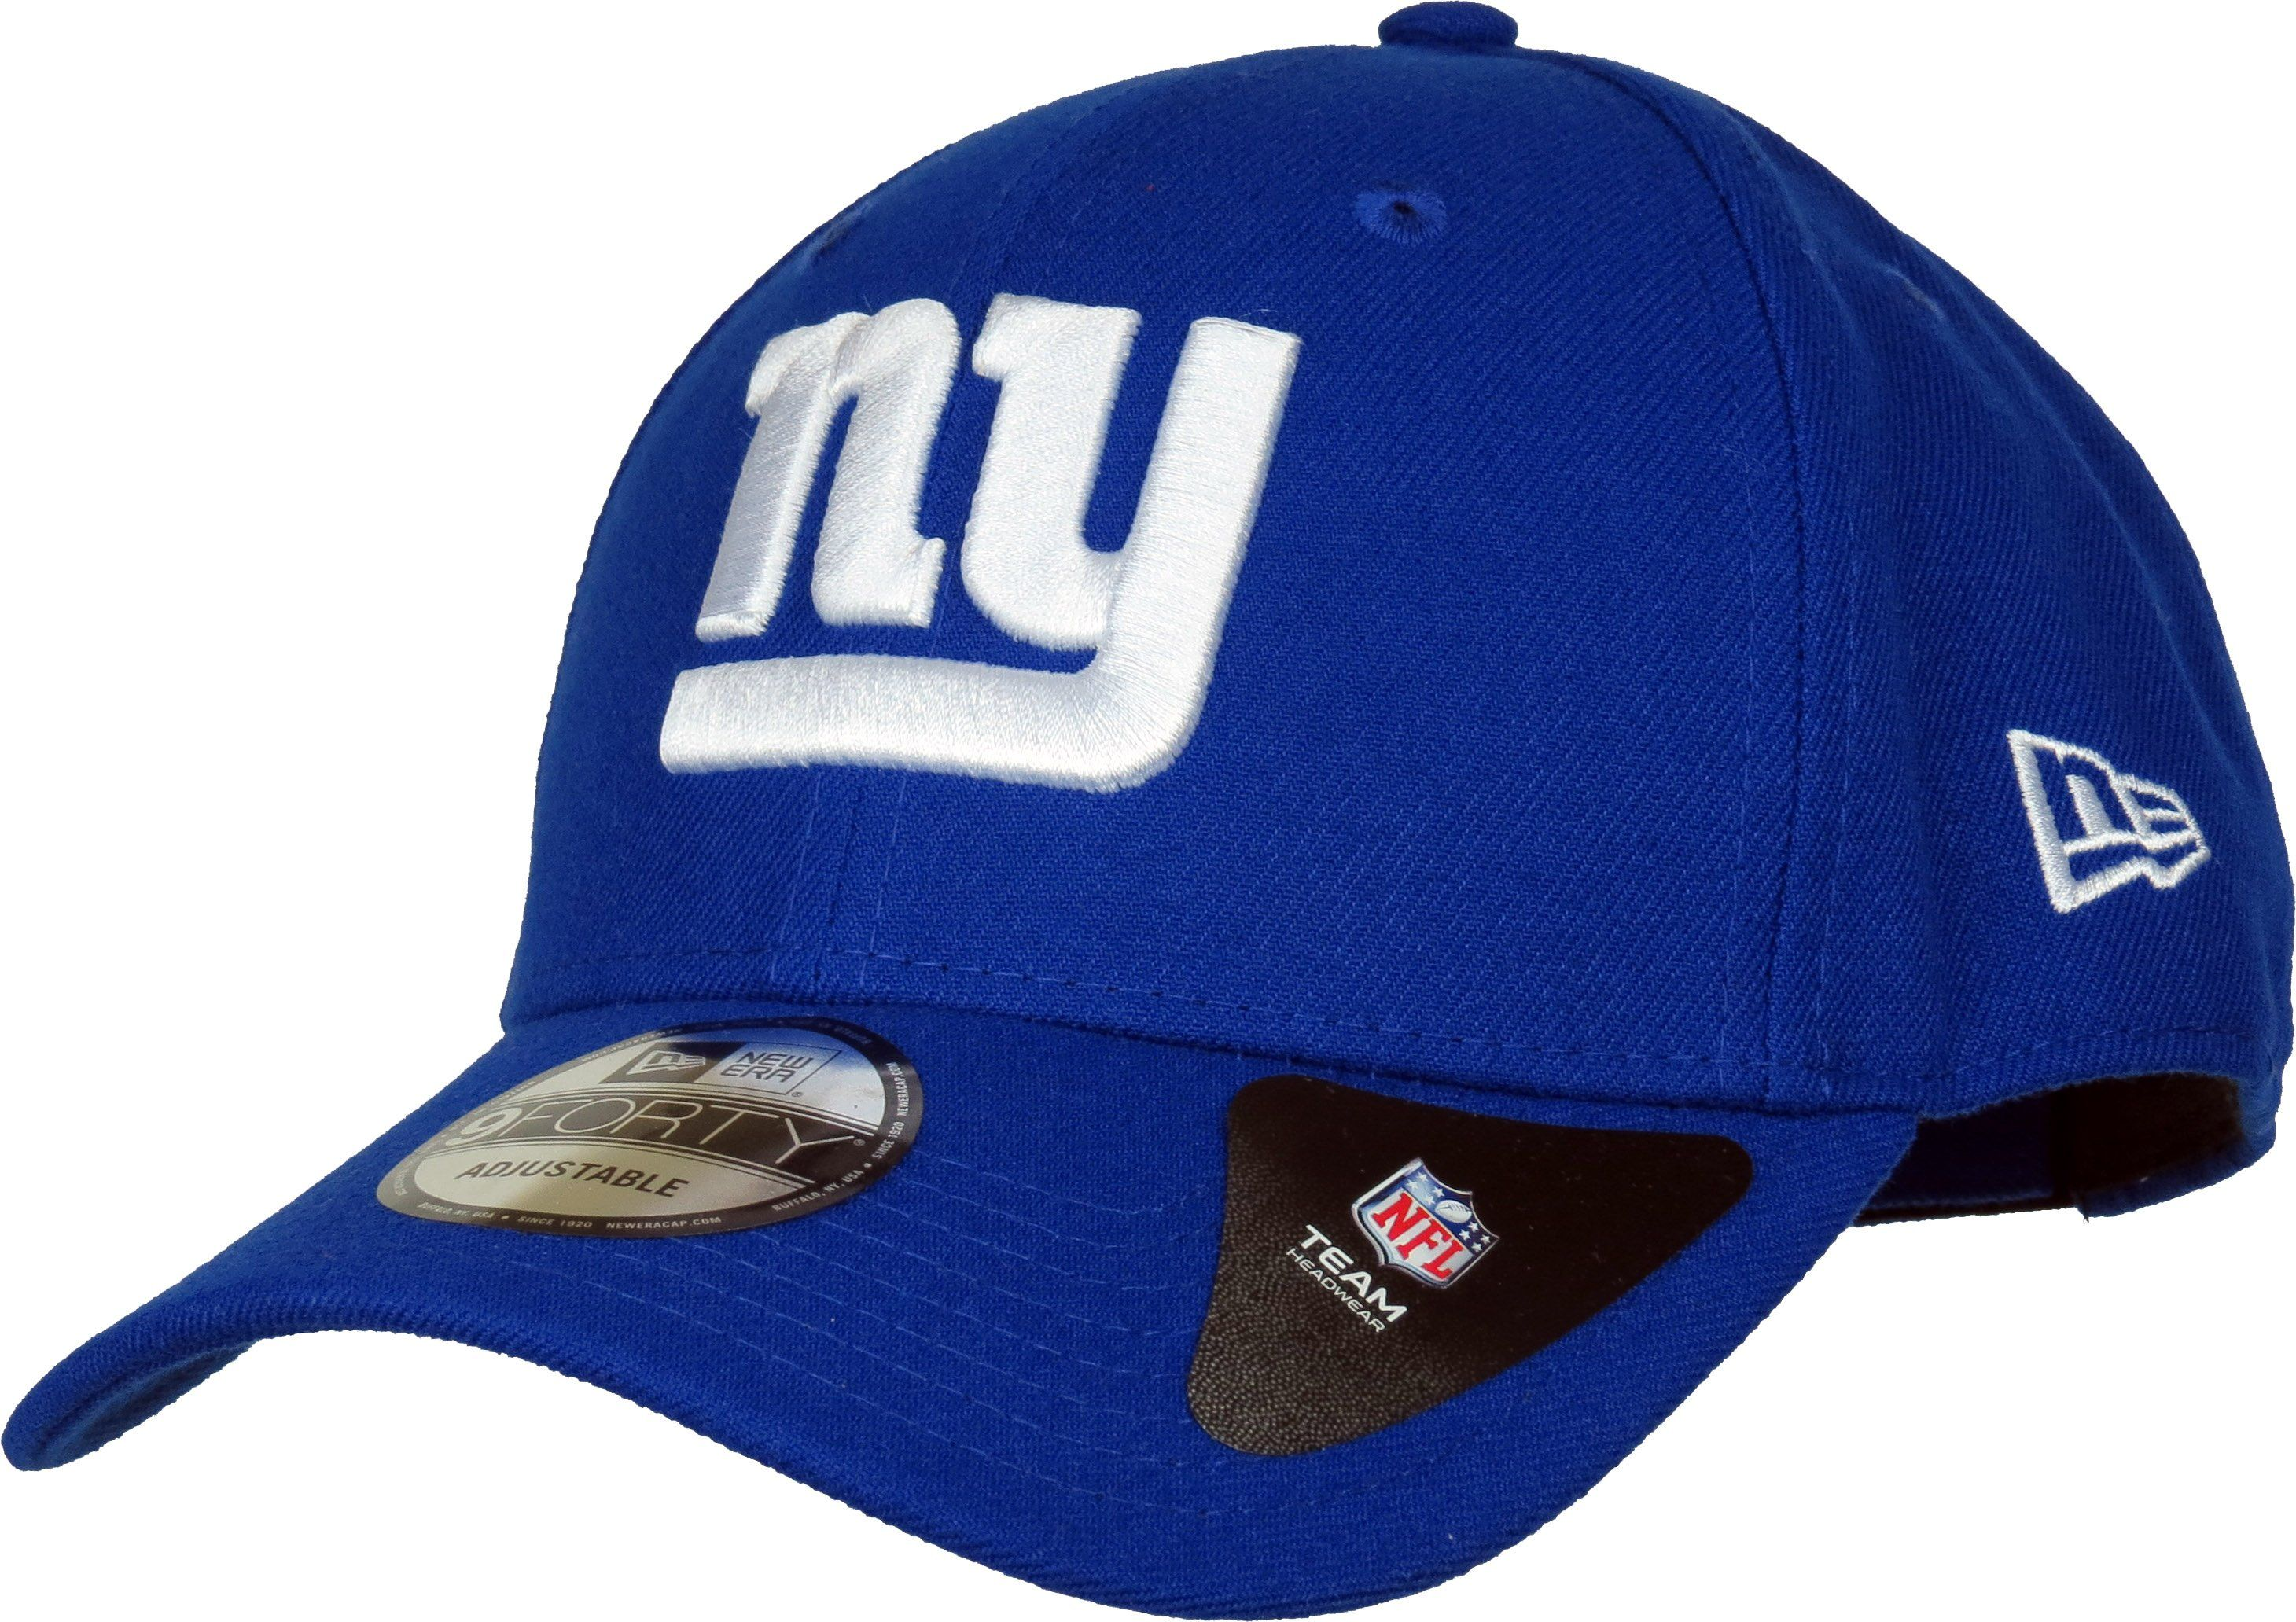 a49260fdf84 New Era 9Forty NFL The League Adjustable Team Cap. Blue with the New York  Giants